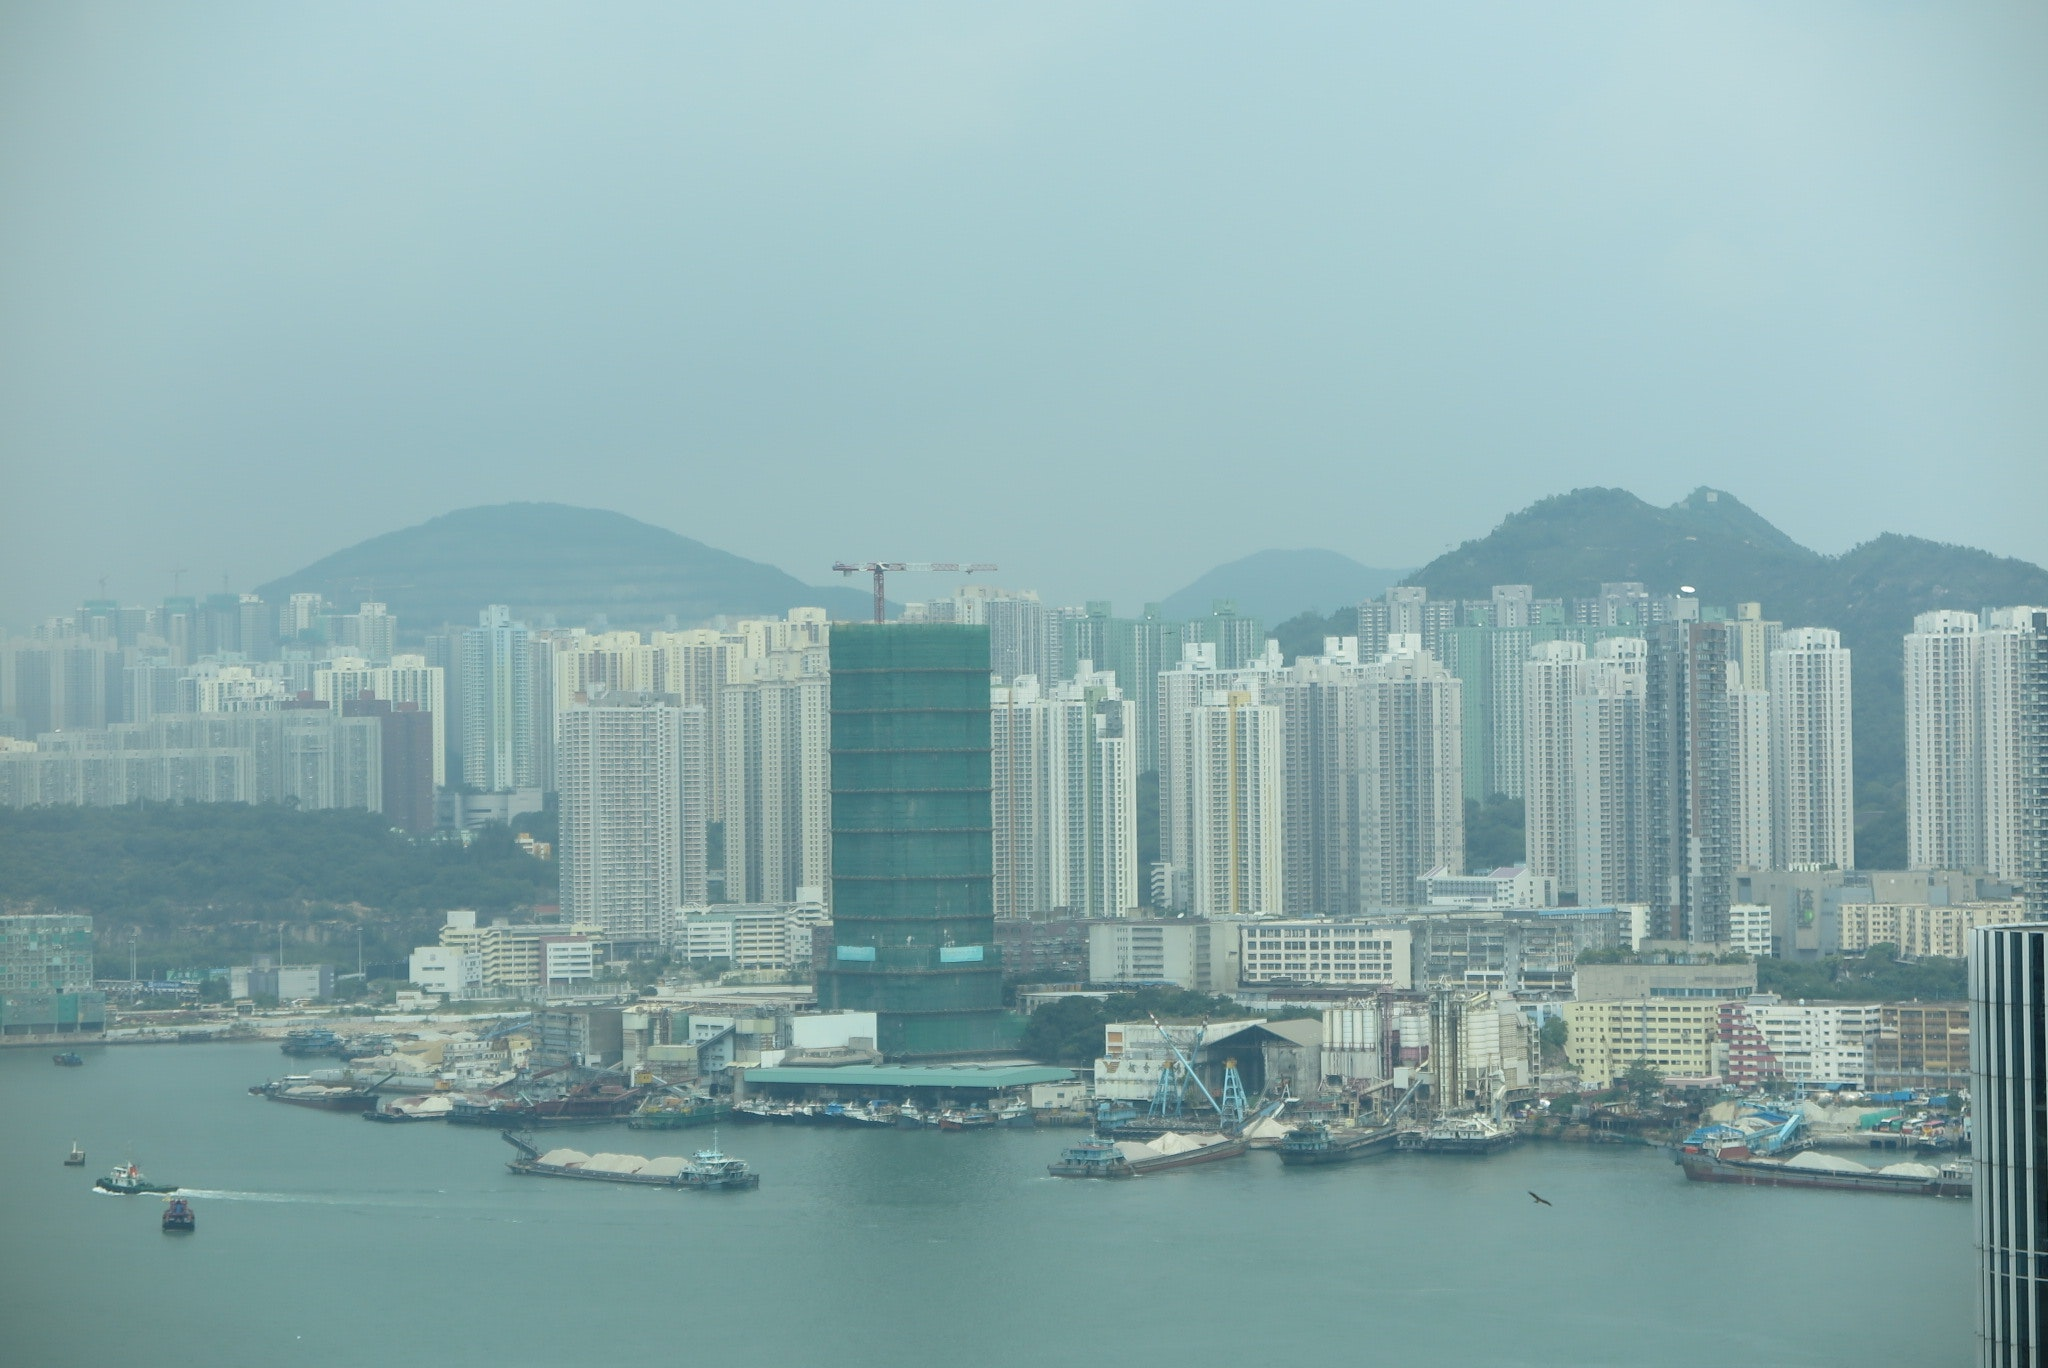 High Rise Building Near Body of Water, Buildings, City, Cityscape, Downtown, HQ Photo